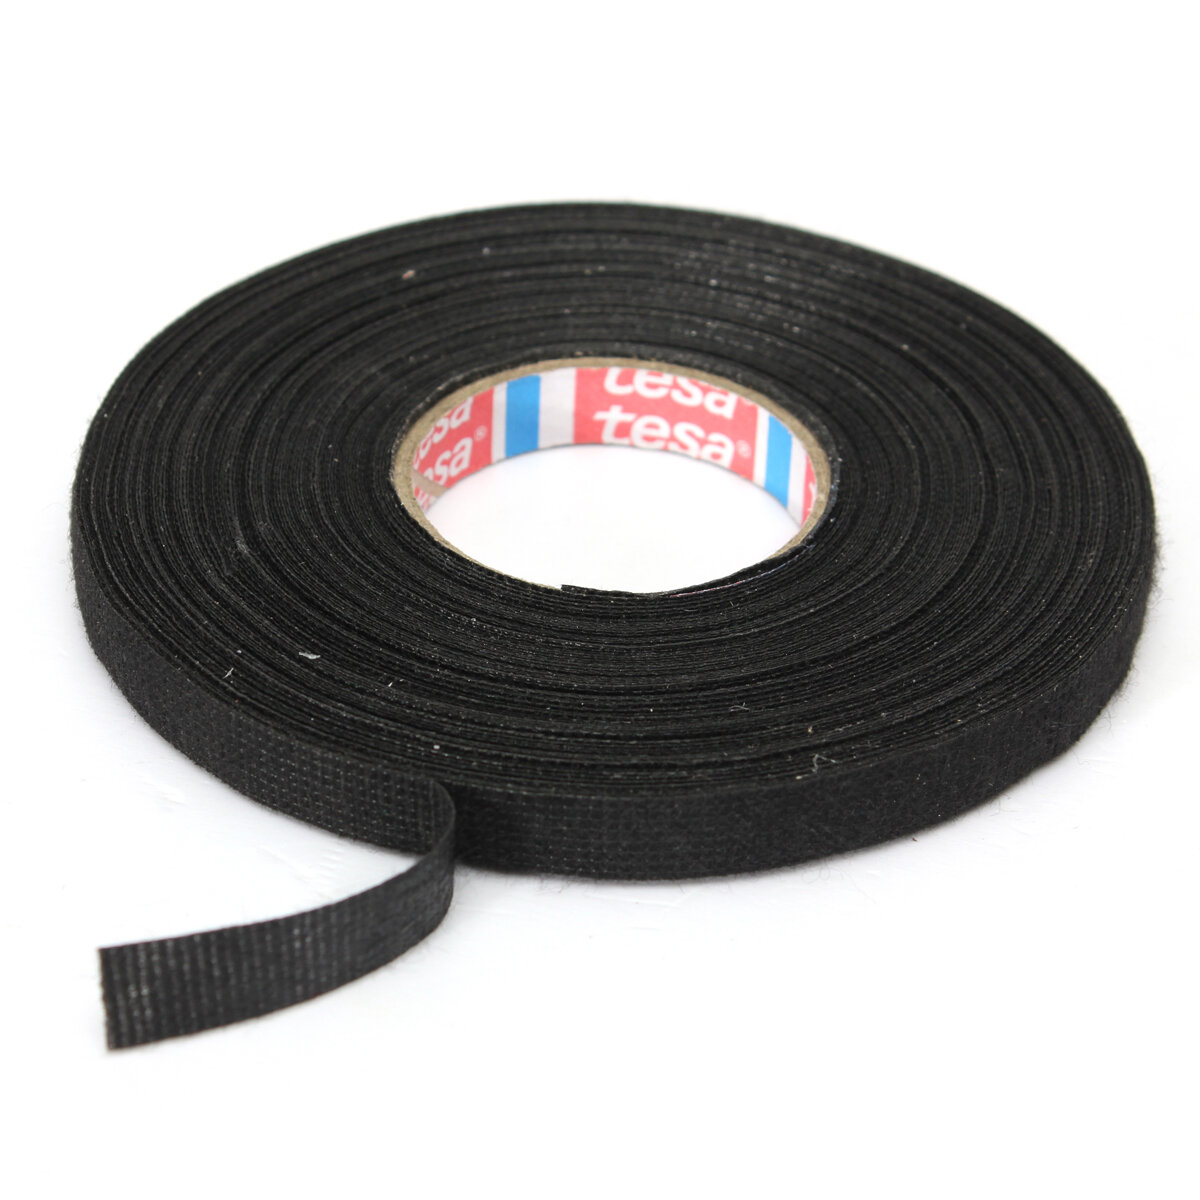 Groovy Car Wiring Loom Harness Adhesive Cloth Fabric Tape Cable Loom 9Mm X Wiring 101 Akebwellnesstrialsorg